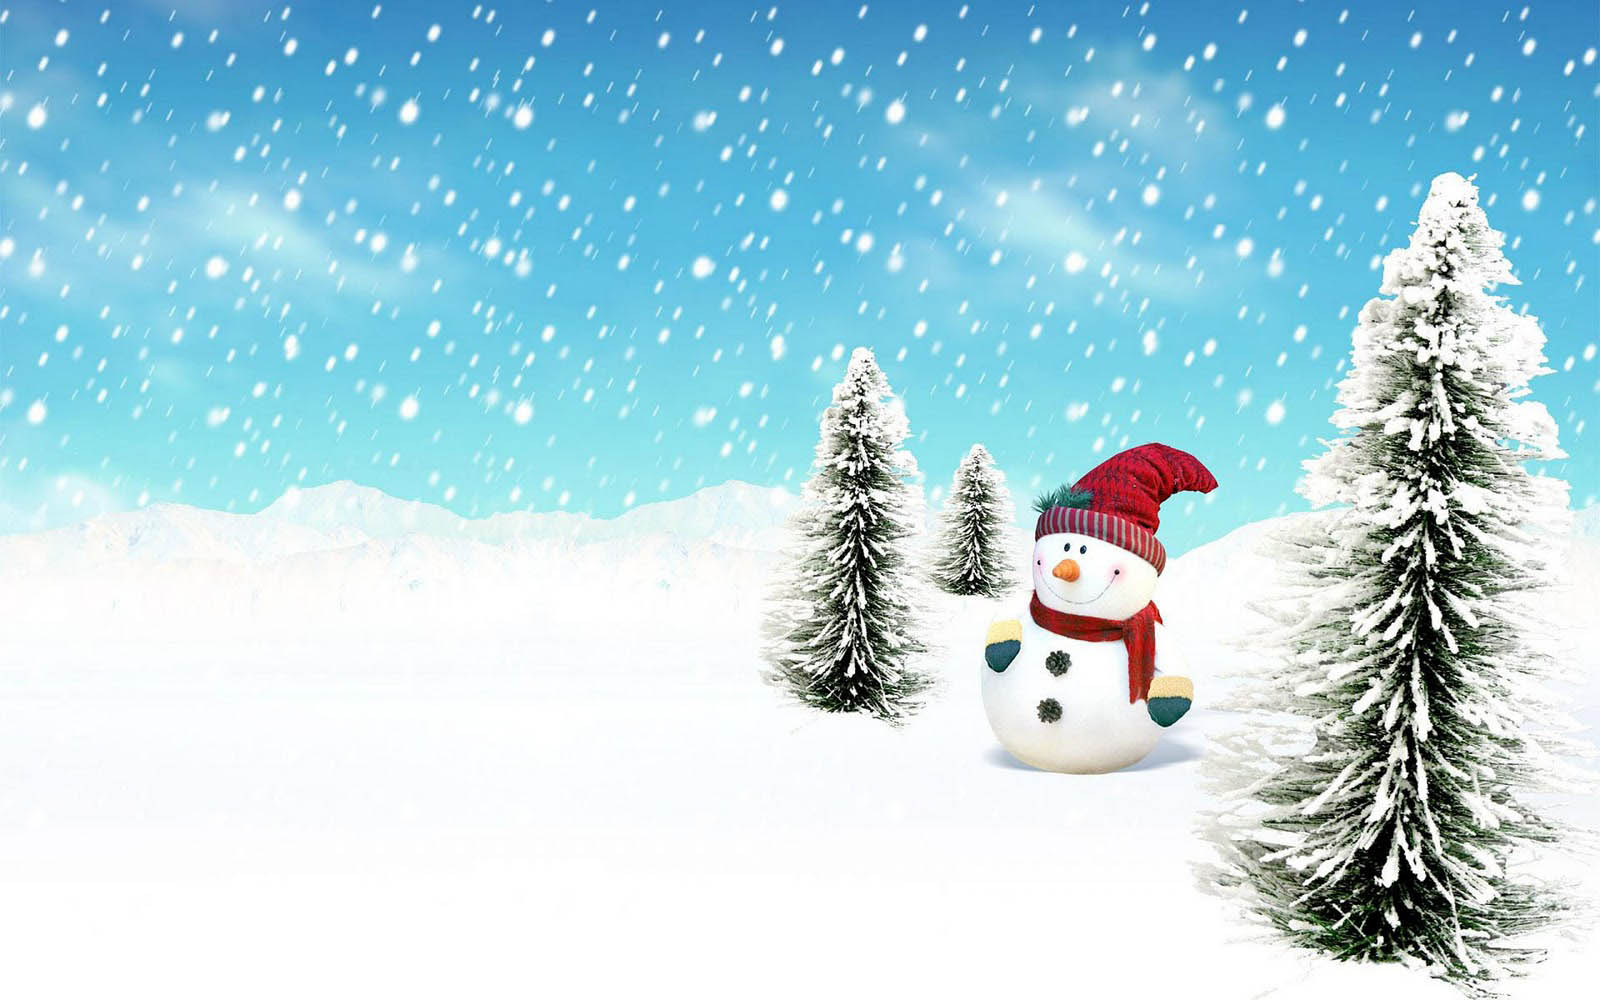 Snowman Backgrounds Wallpapers Photos Picturesand Images for 1600x1000